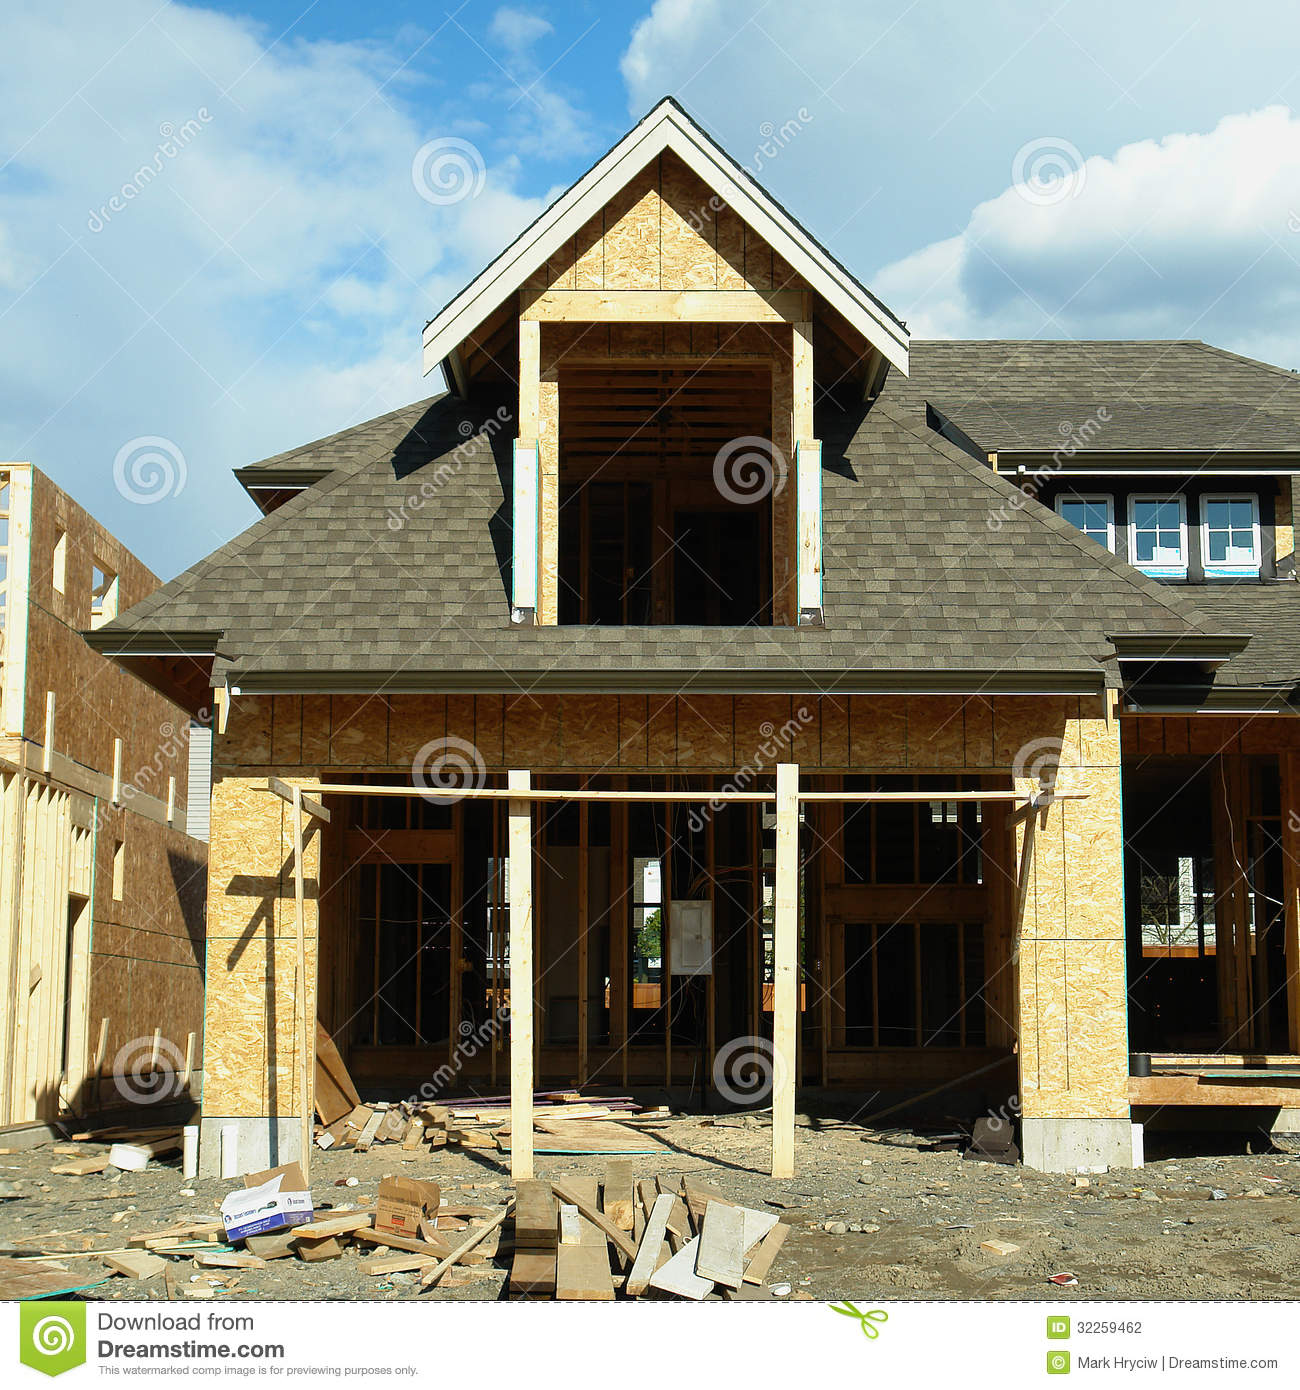 Housing unfinished stock photography image 32259462 for Stages of home construction